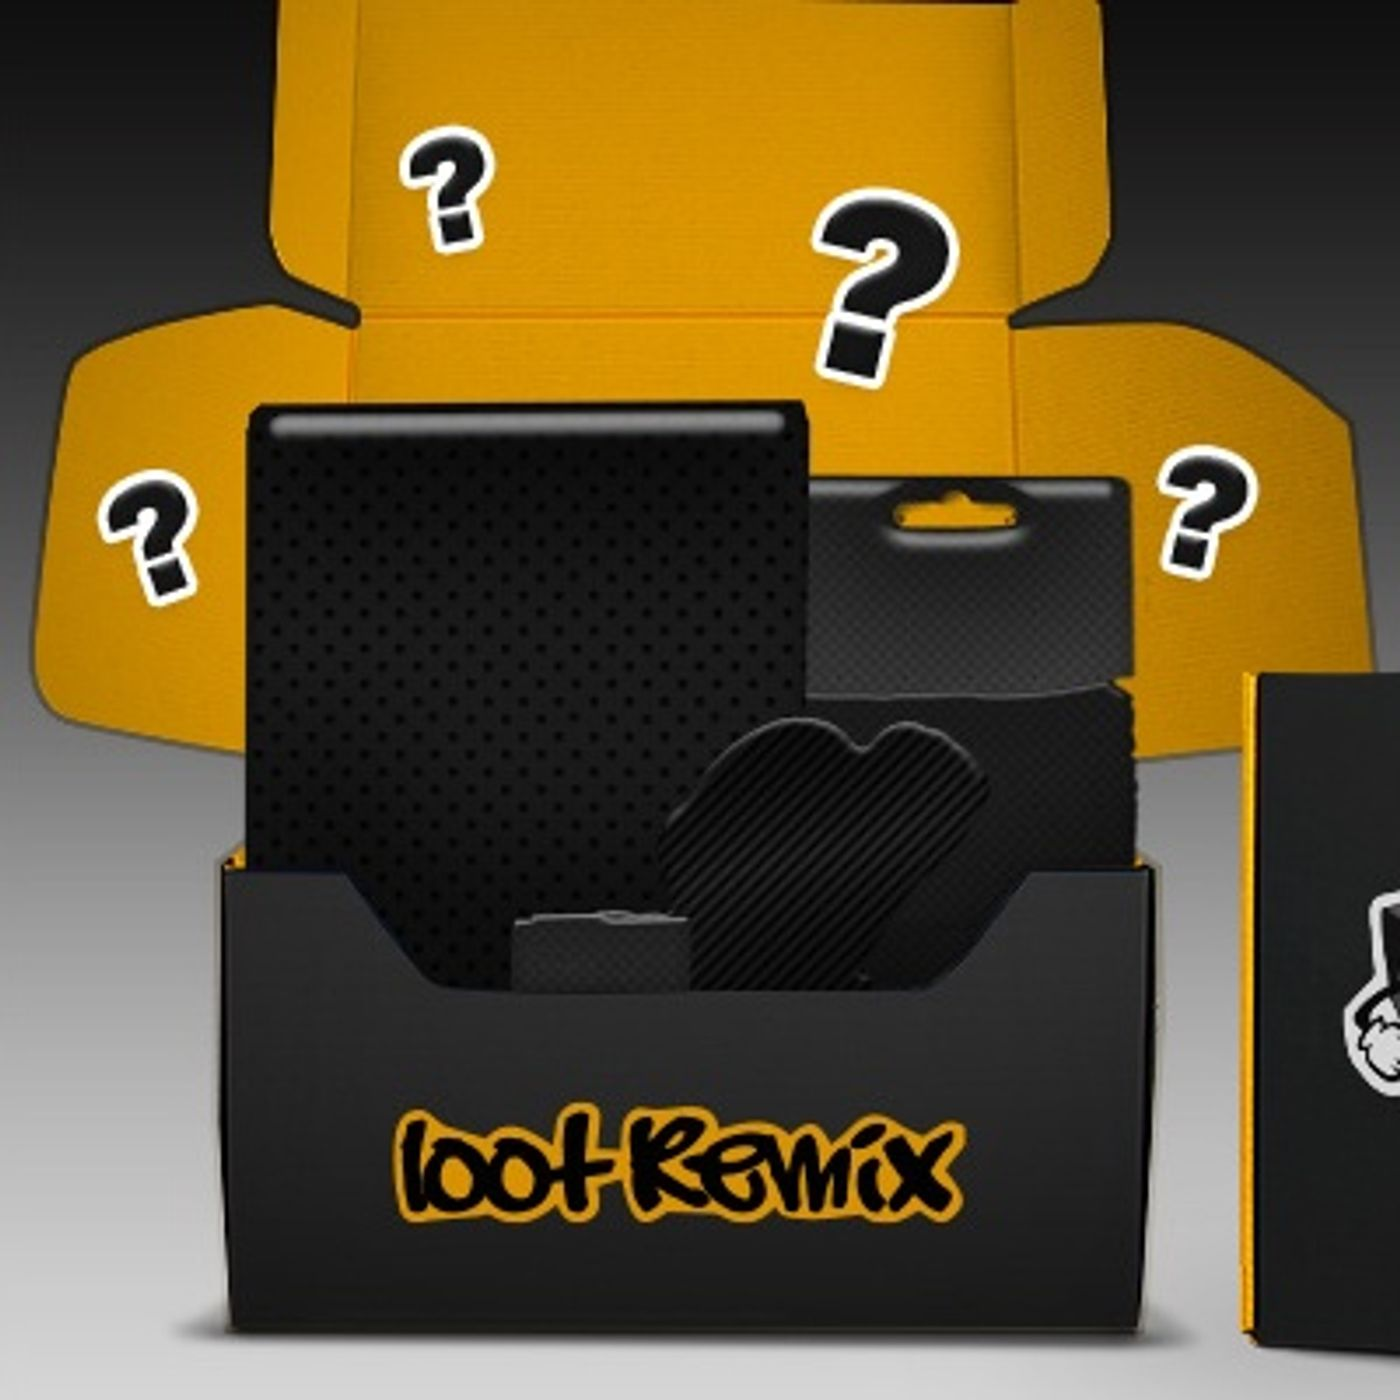 Loot Remix Announcement and Thoughts